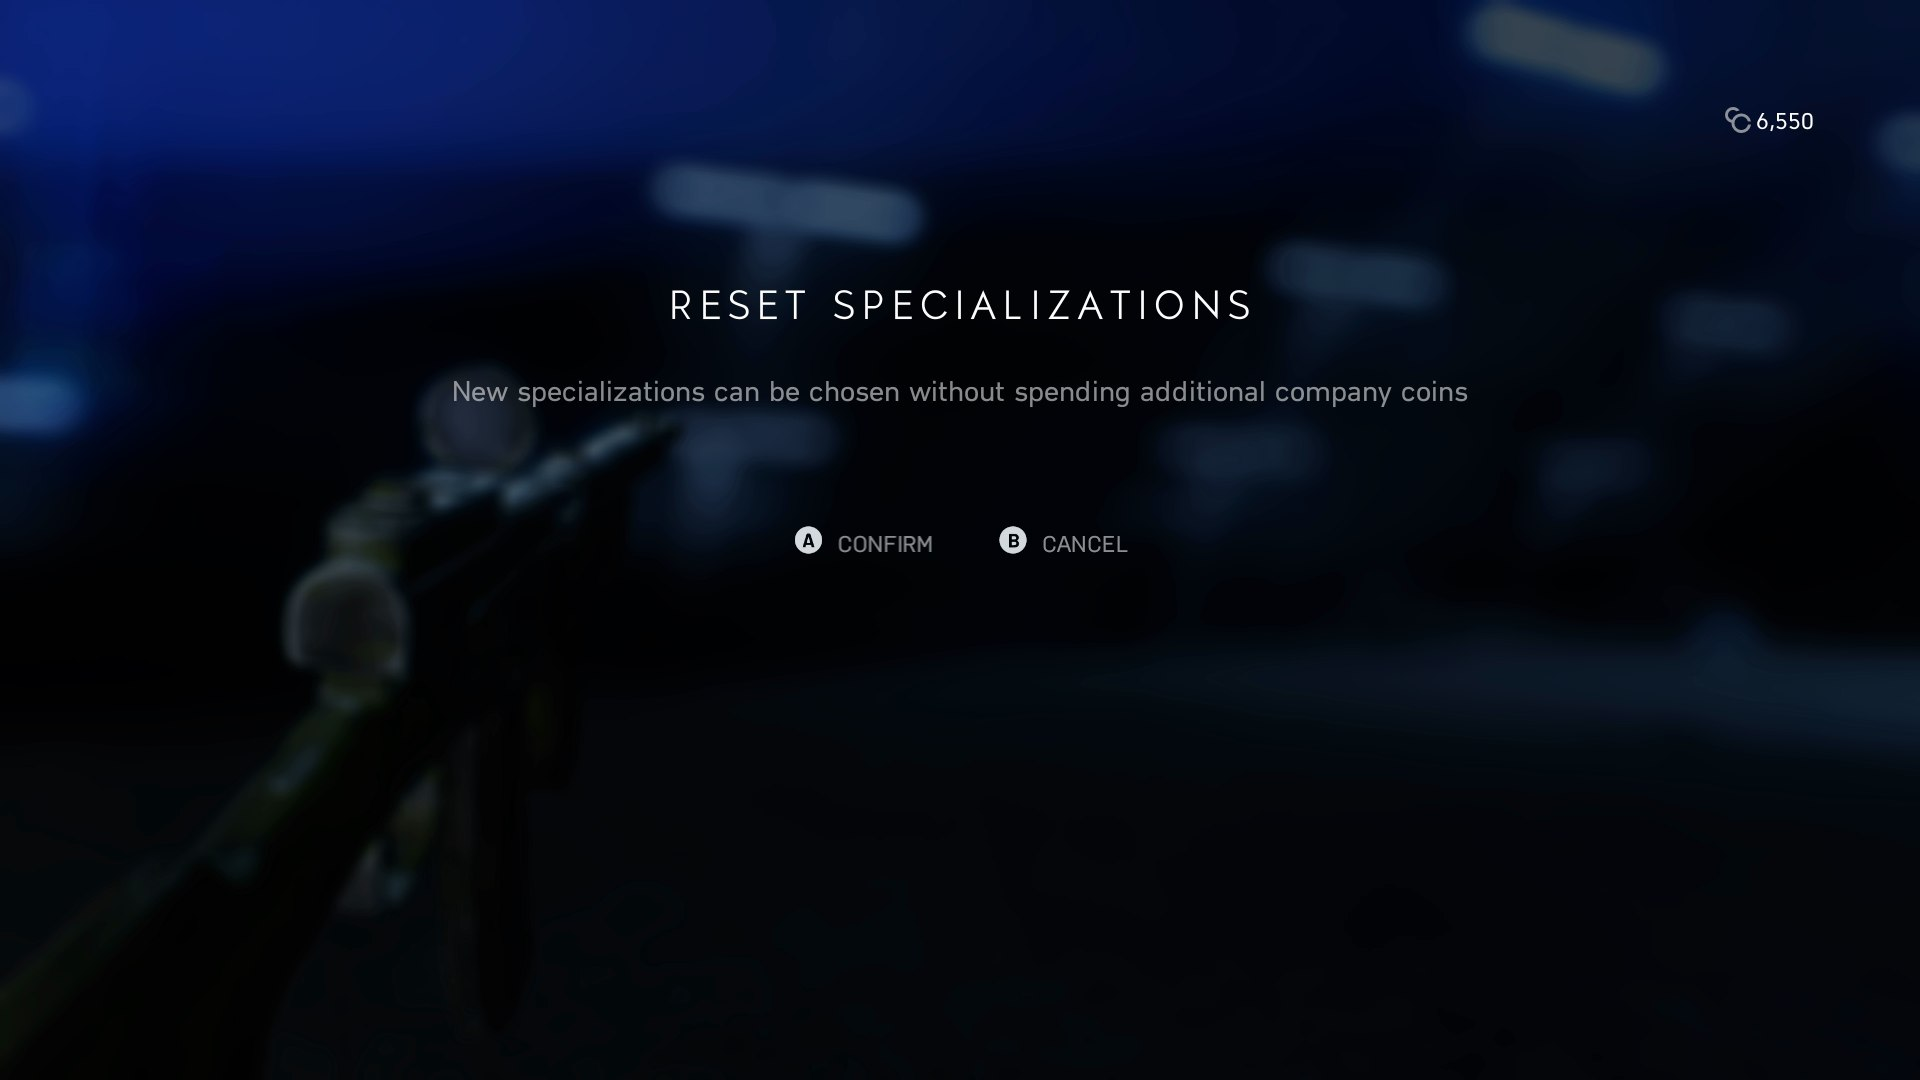 Battlefield 5 Gun Upgrades Guide - How to Customize Your